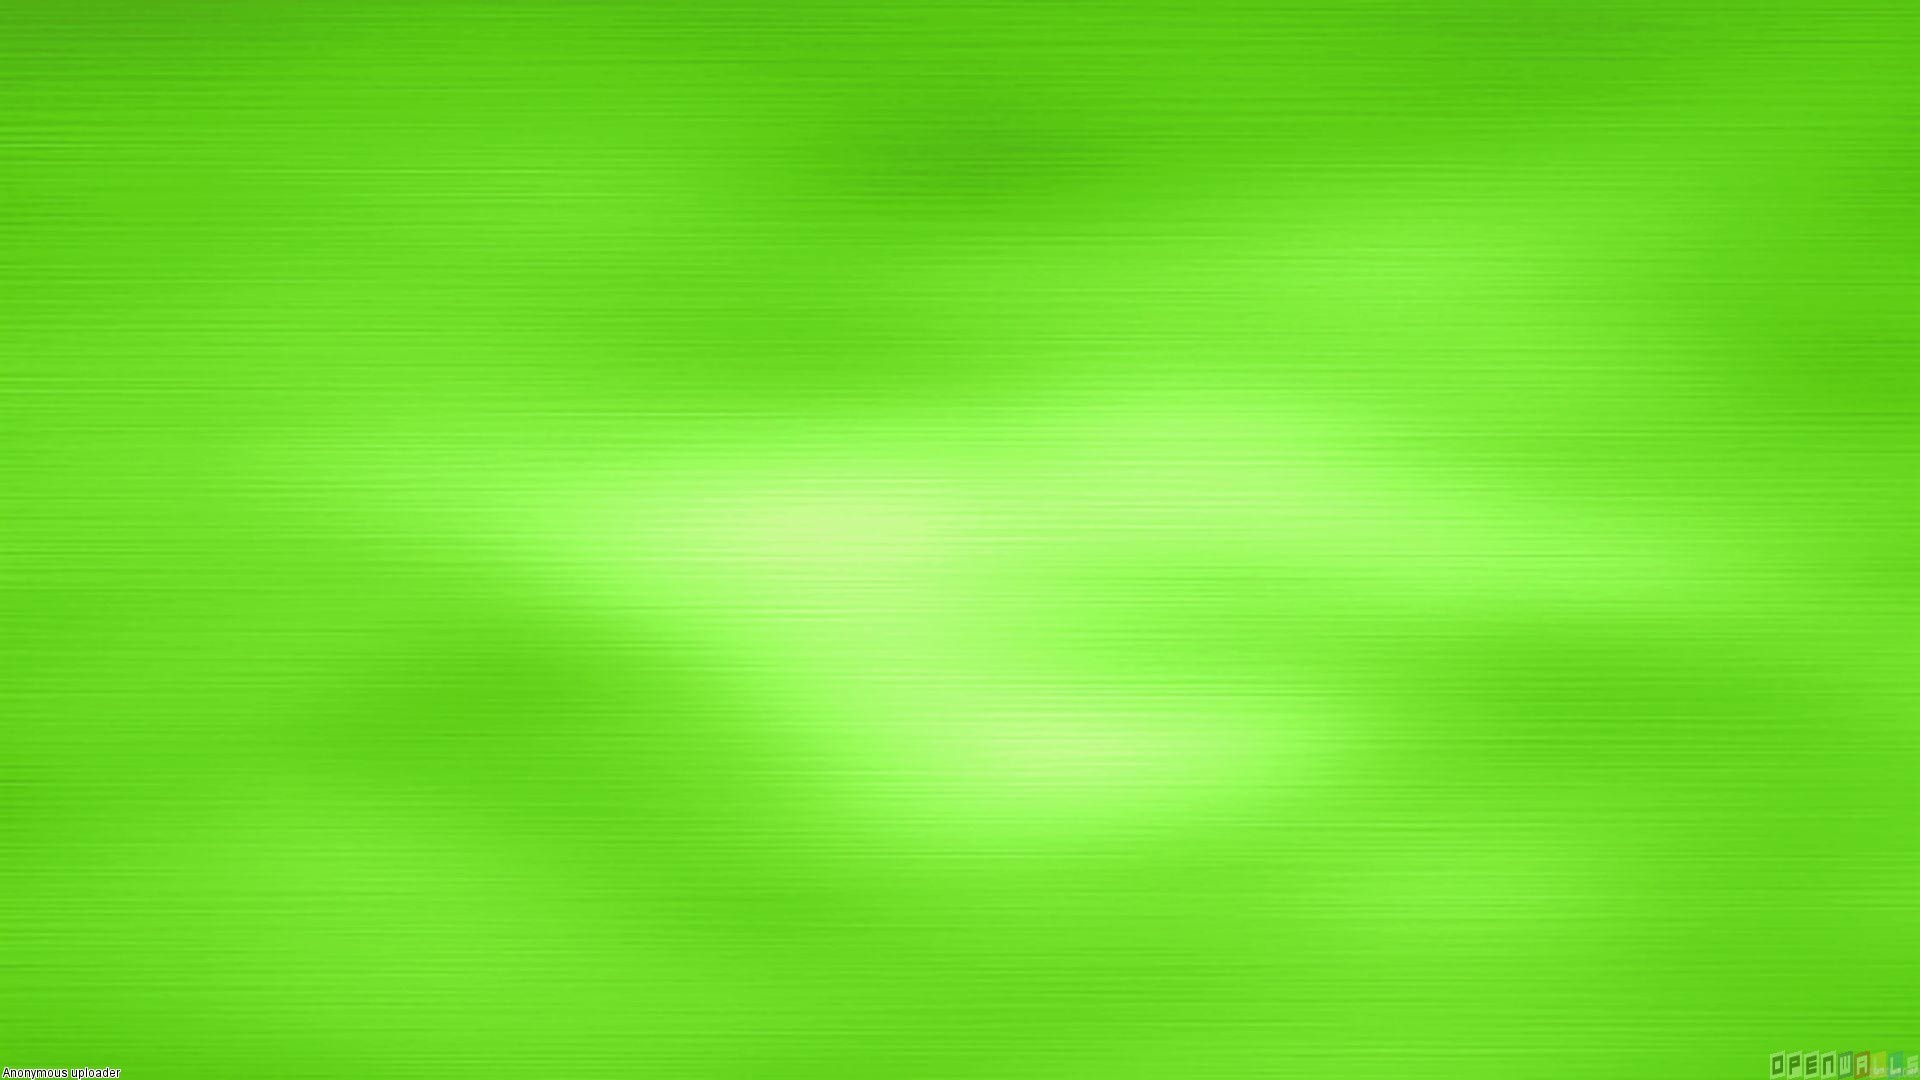 Green Background Images ·① Download Free Cool High